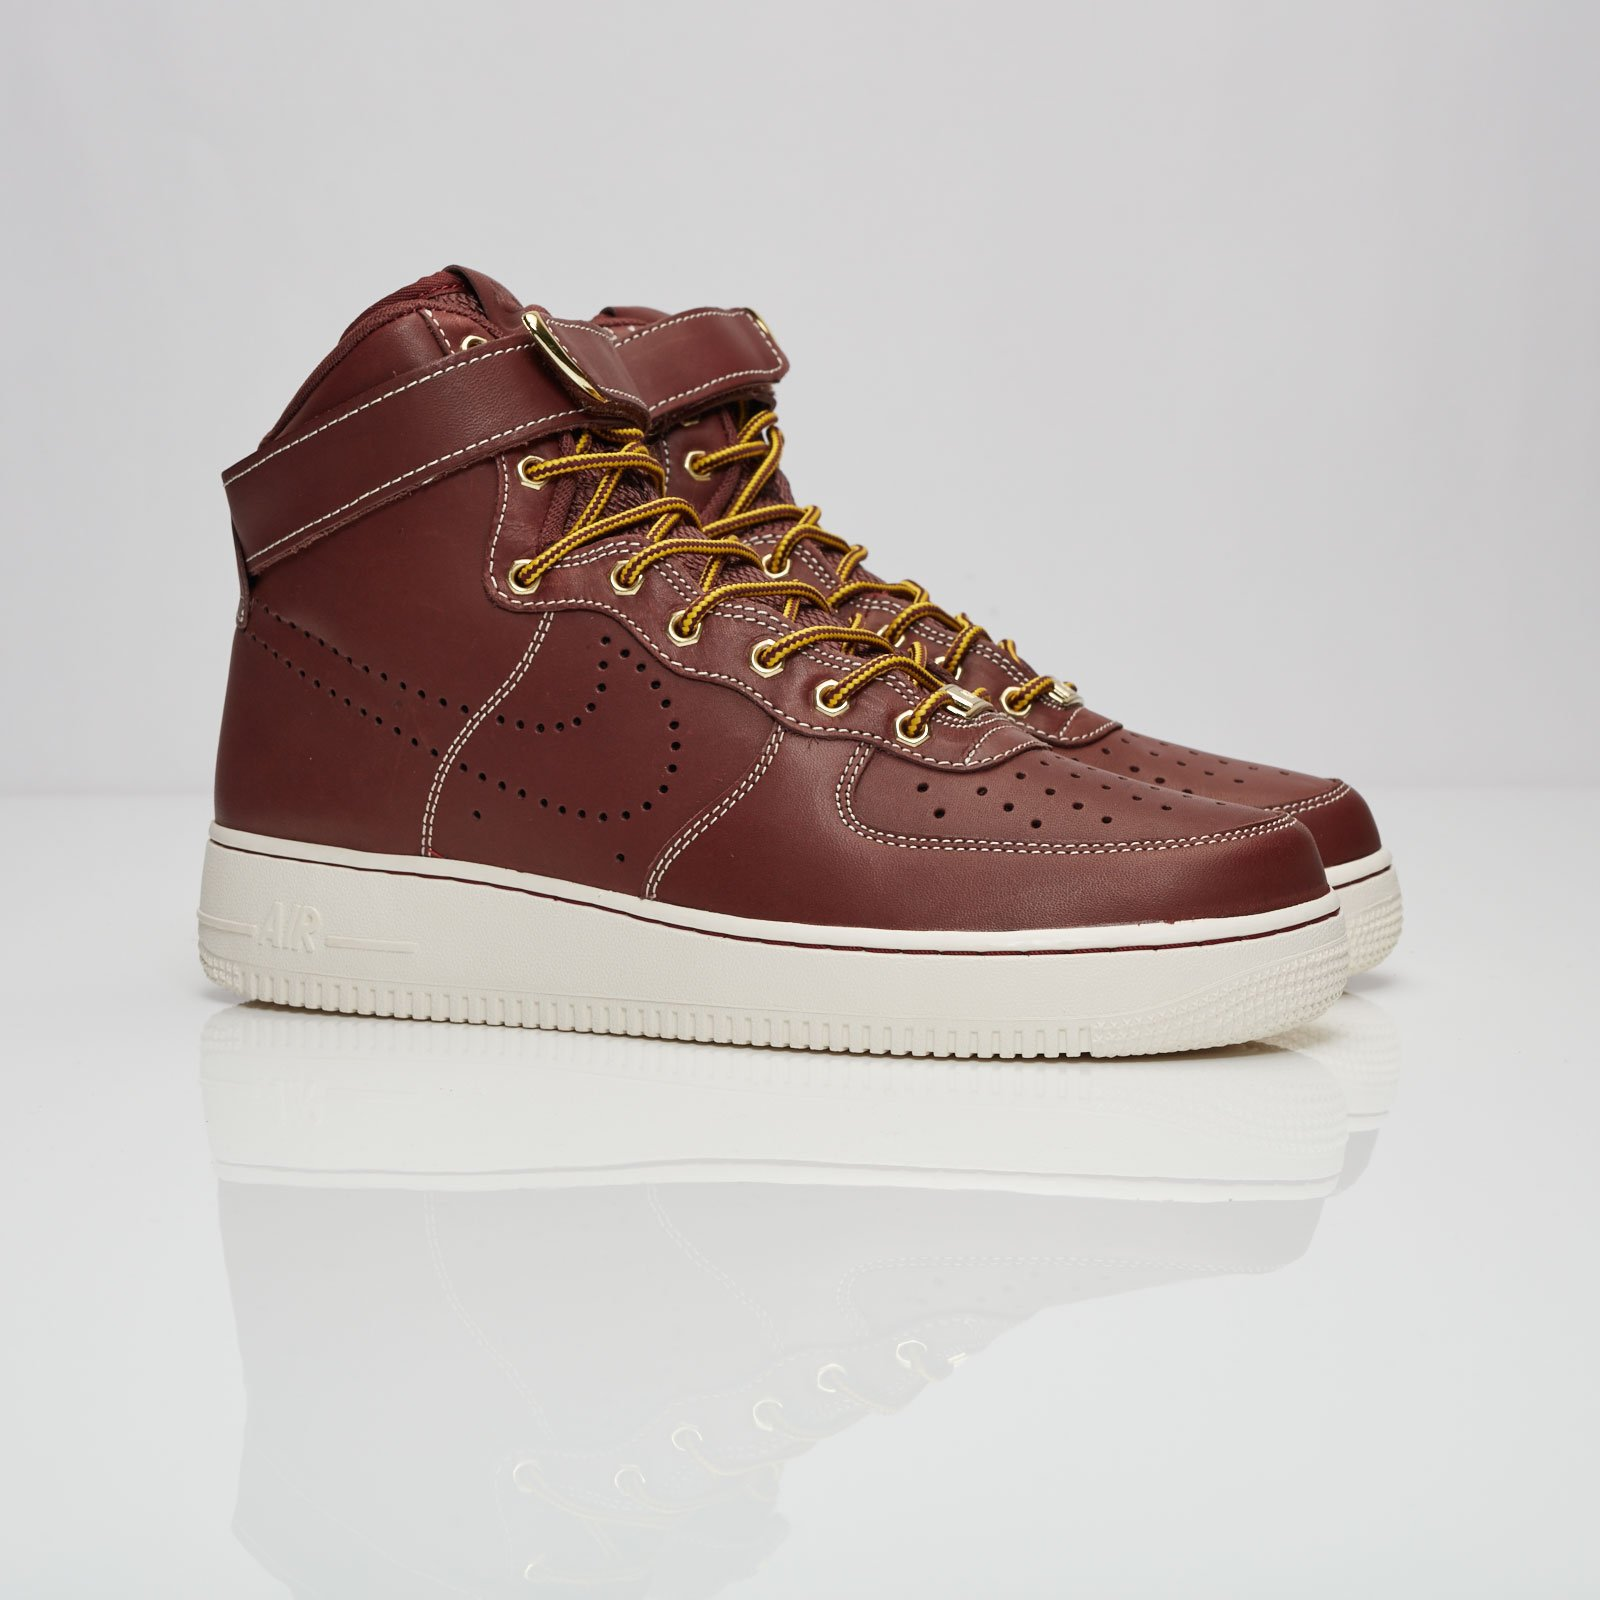 14b1a3fcc72300 Nike Air Force 1 Hi 08 Lv8 WB - 882096-600 - Sneakersnstuff ...